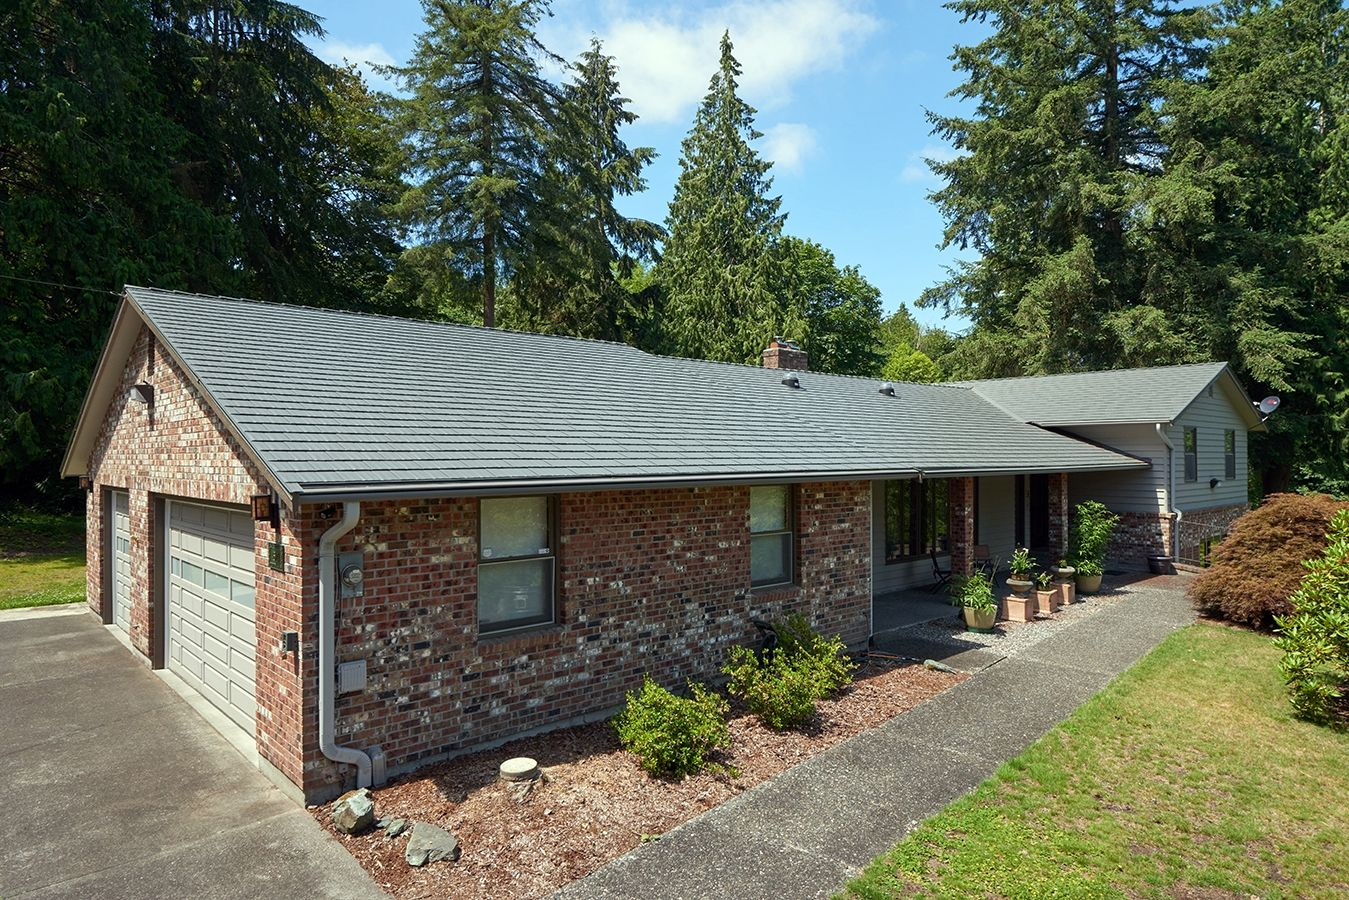 interlock-cedar-shingle-metal-roof-musket-grey-arlington-wa